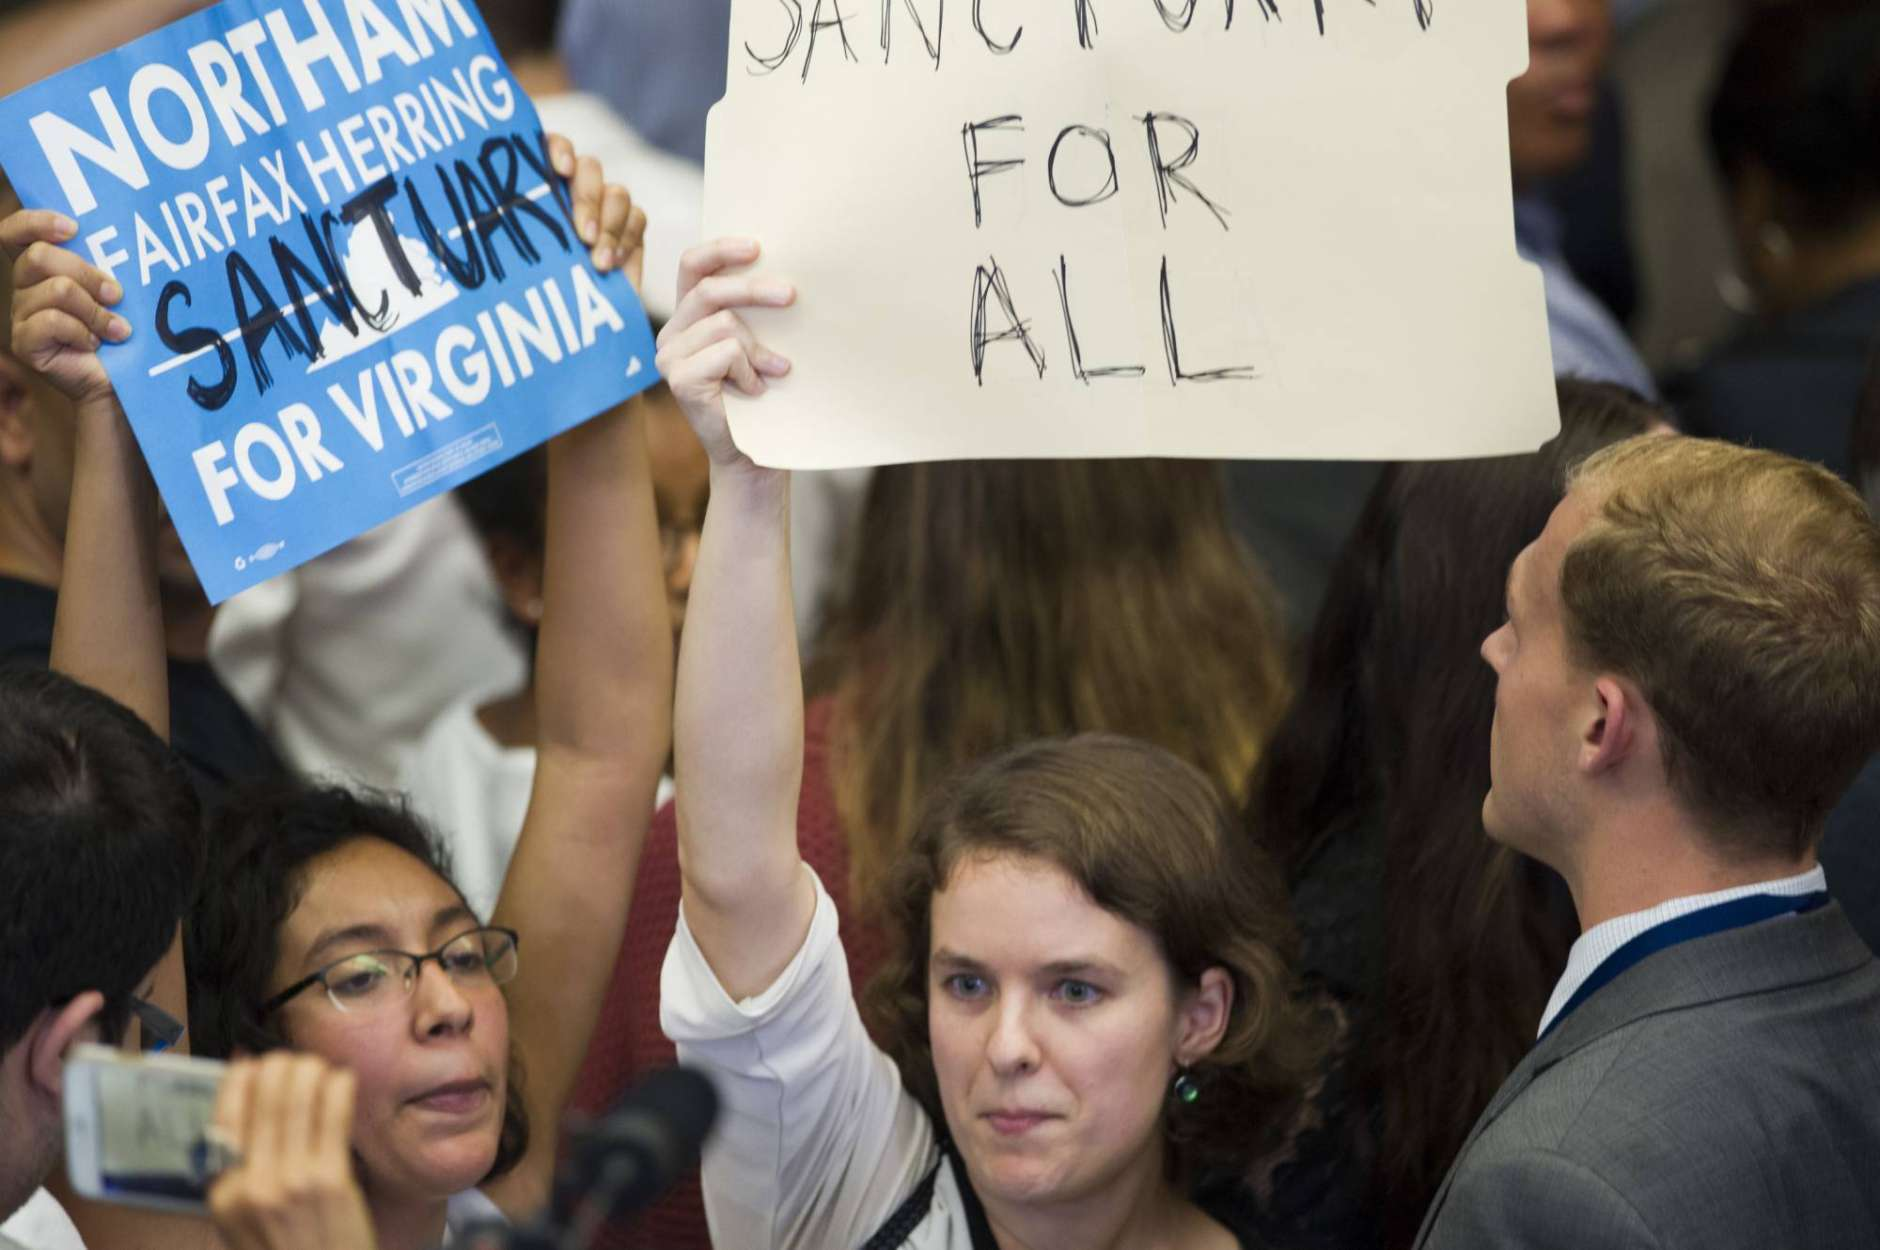 Protestors interrupt Virginia Gov. elect Ralph Northam as he addresses supporters at the Northam For Governor election night party at George Mason University in Fairfax, Va., Tuesday, Nov. 7, 2017. (AP Photo/Cliff Owen)